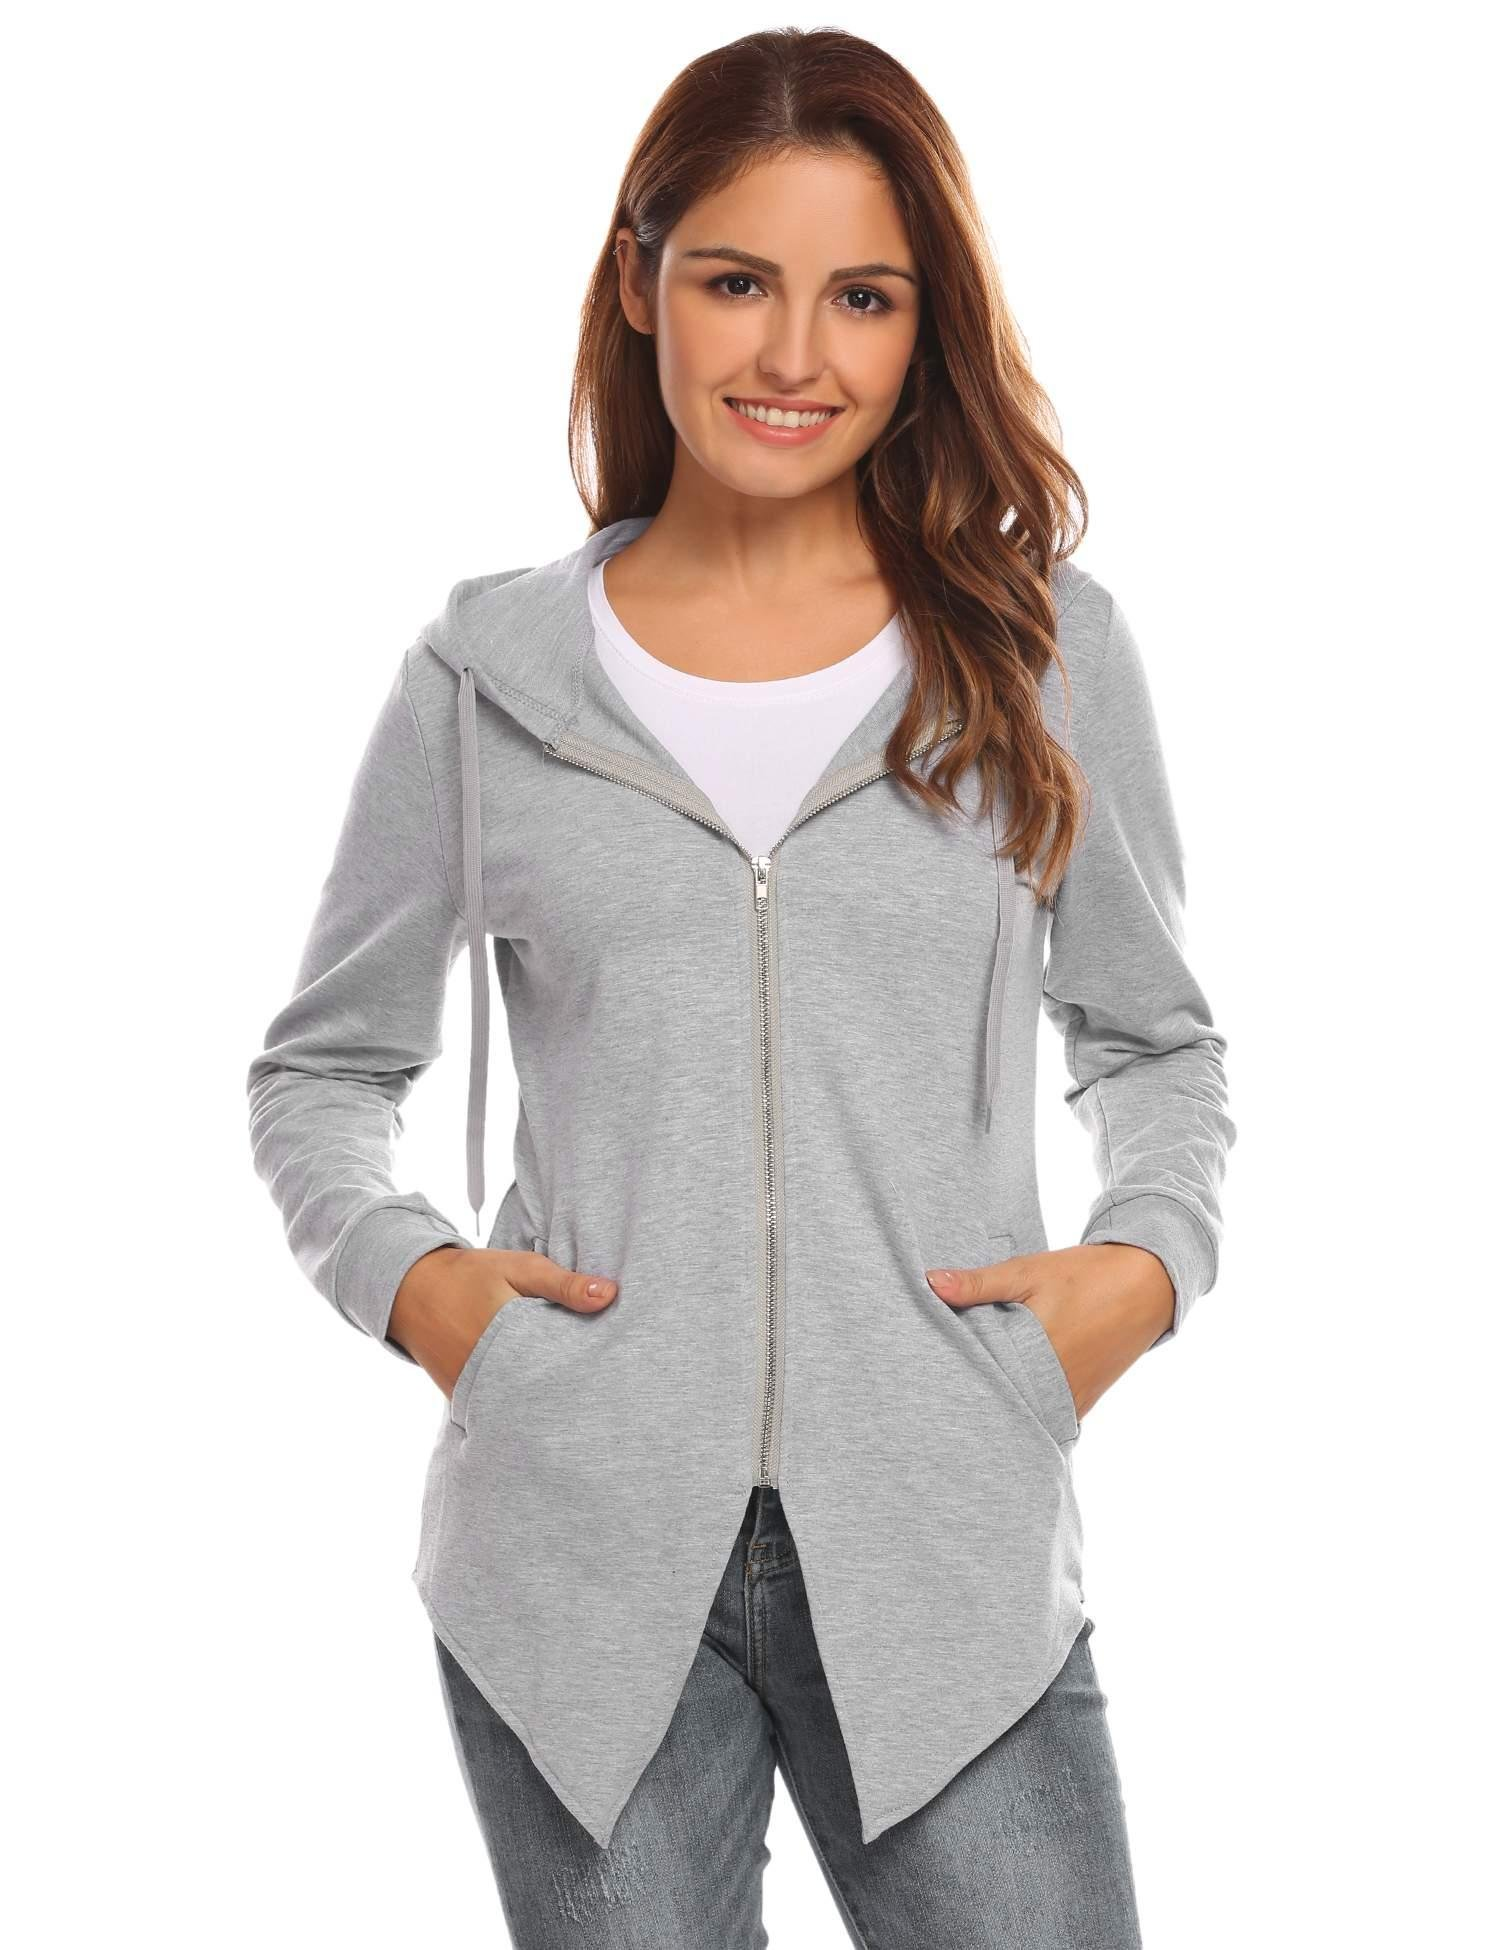 Misakia Womens Outdoor Windproof Lightweight Jacket (Light Gray M)